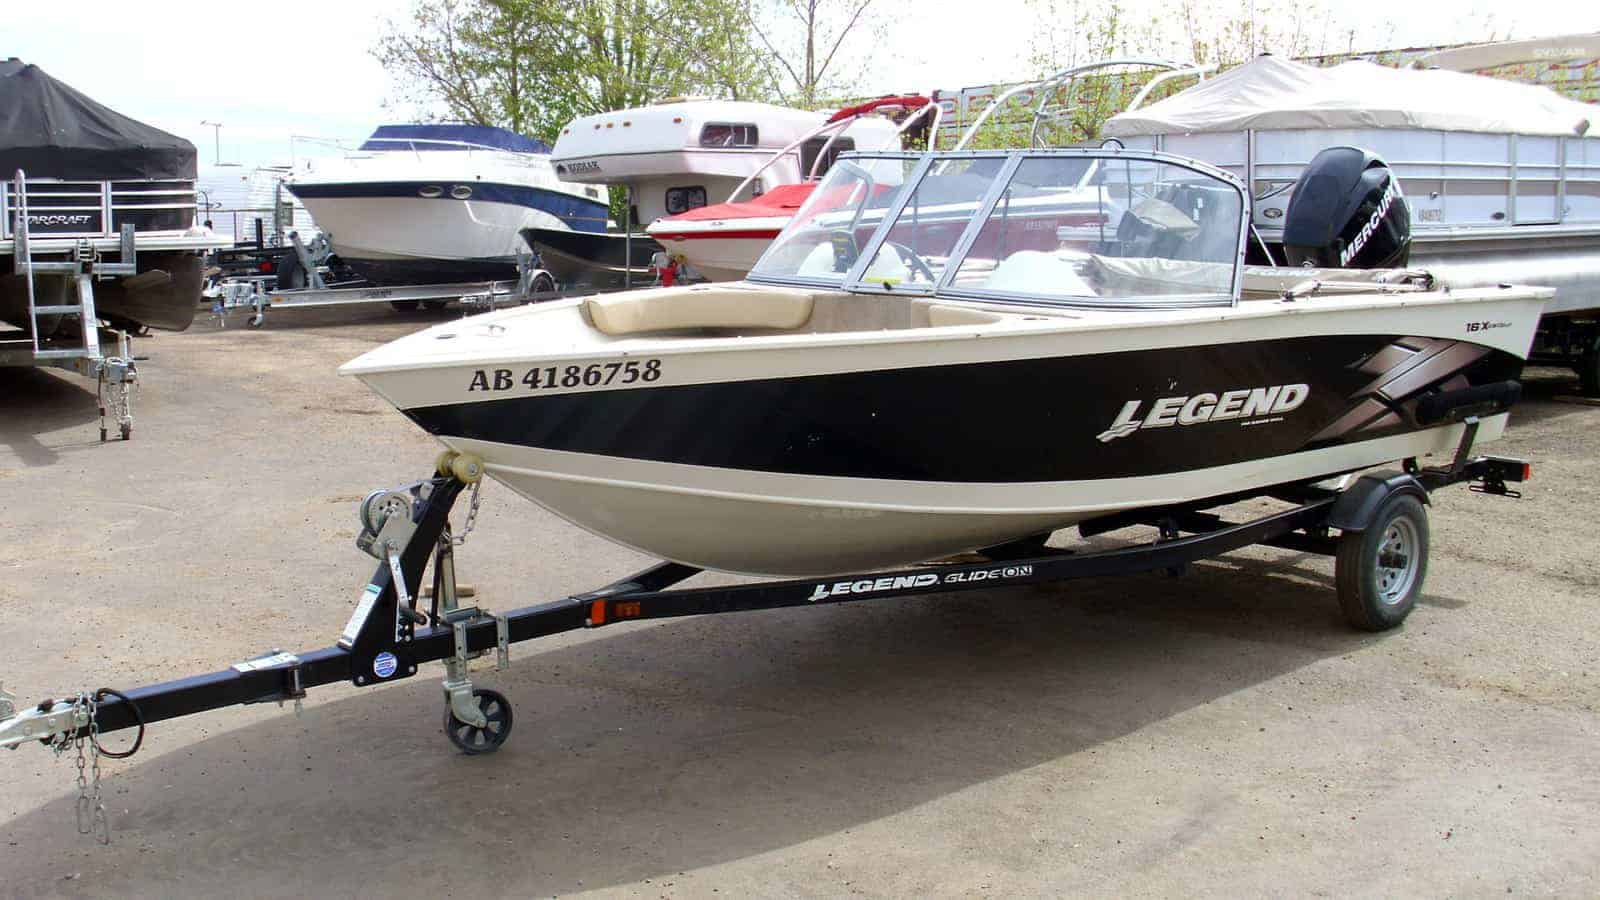 USED 2011 Legend 16 Xcalibur - Lighthouse Marine